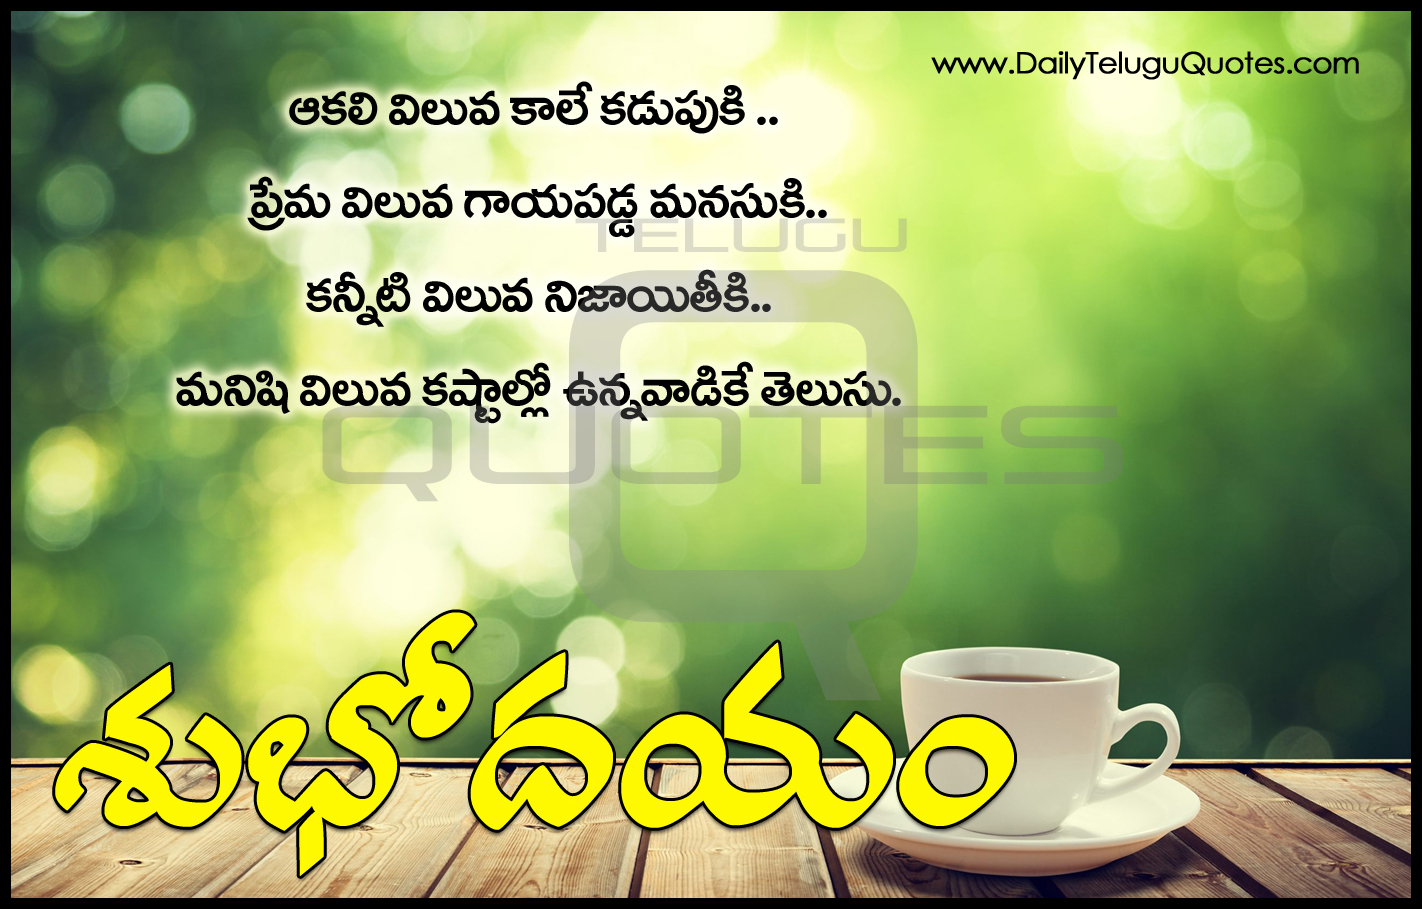 Good Morning Love Telugu : Good morning quotes in telugu wallpapers life motivational